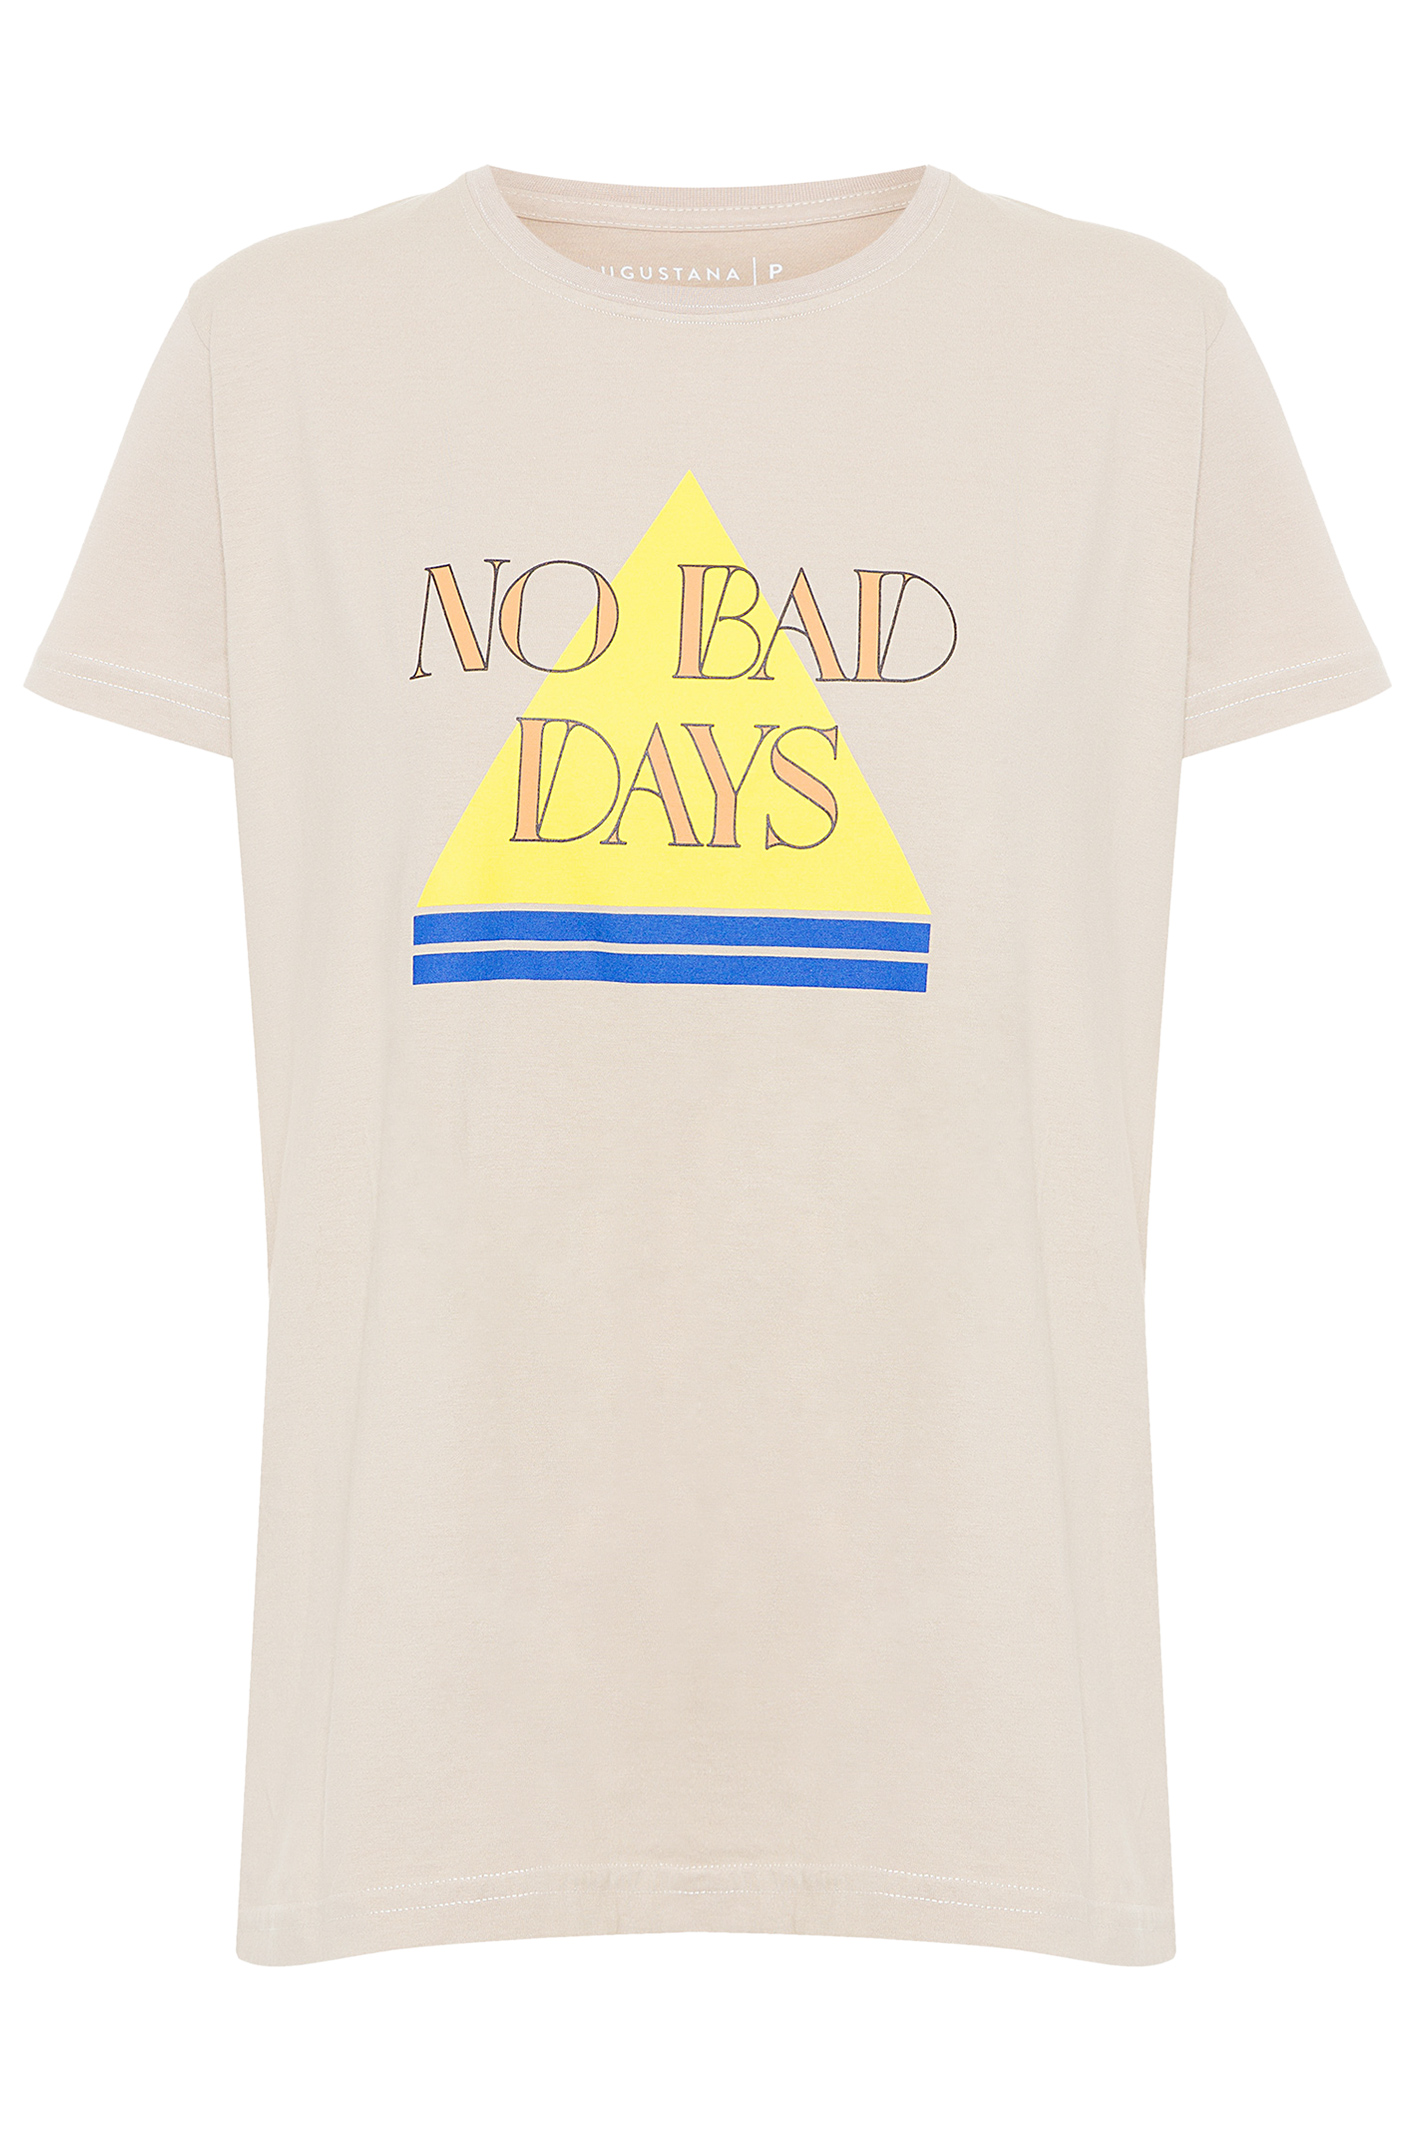 T-Shirt No Bad Vibes - Bege